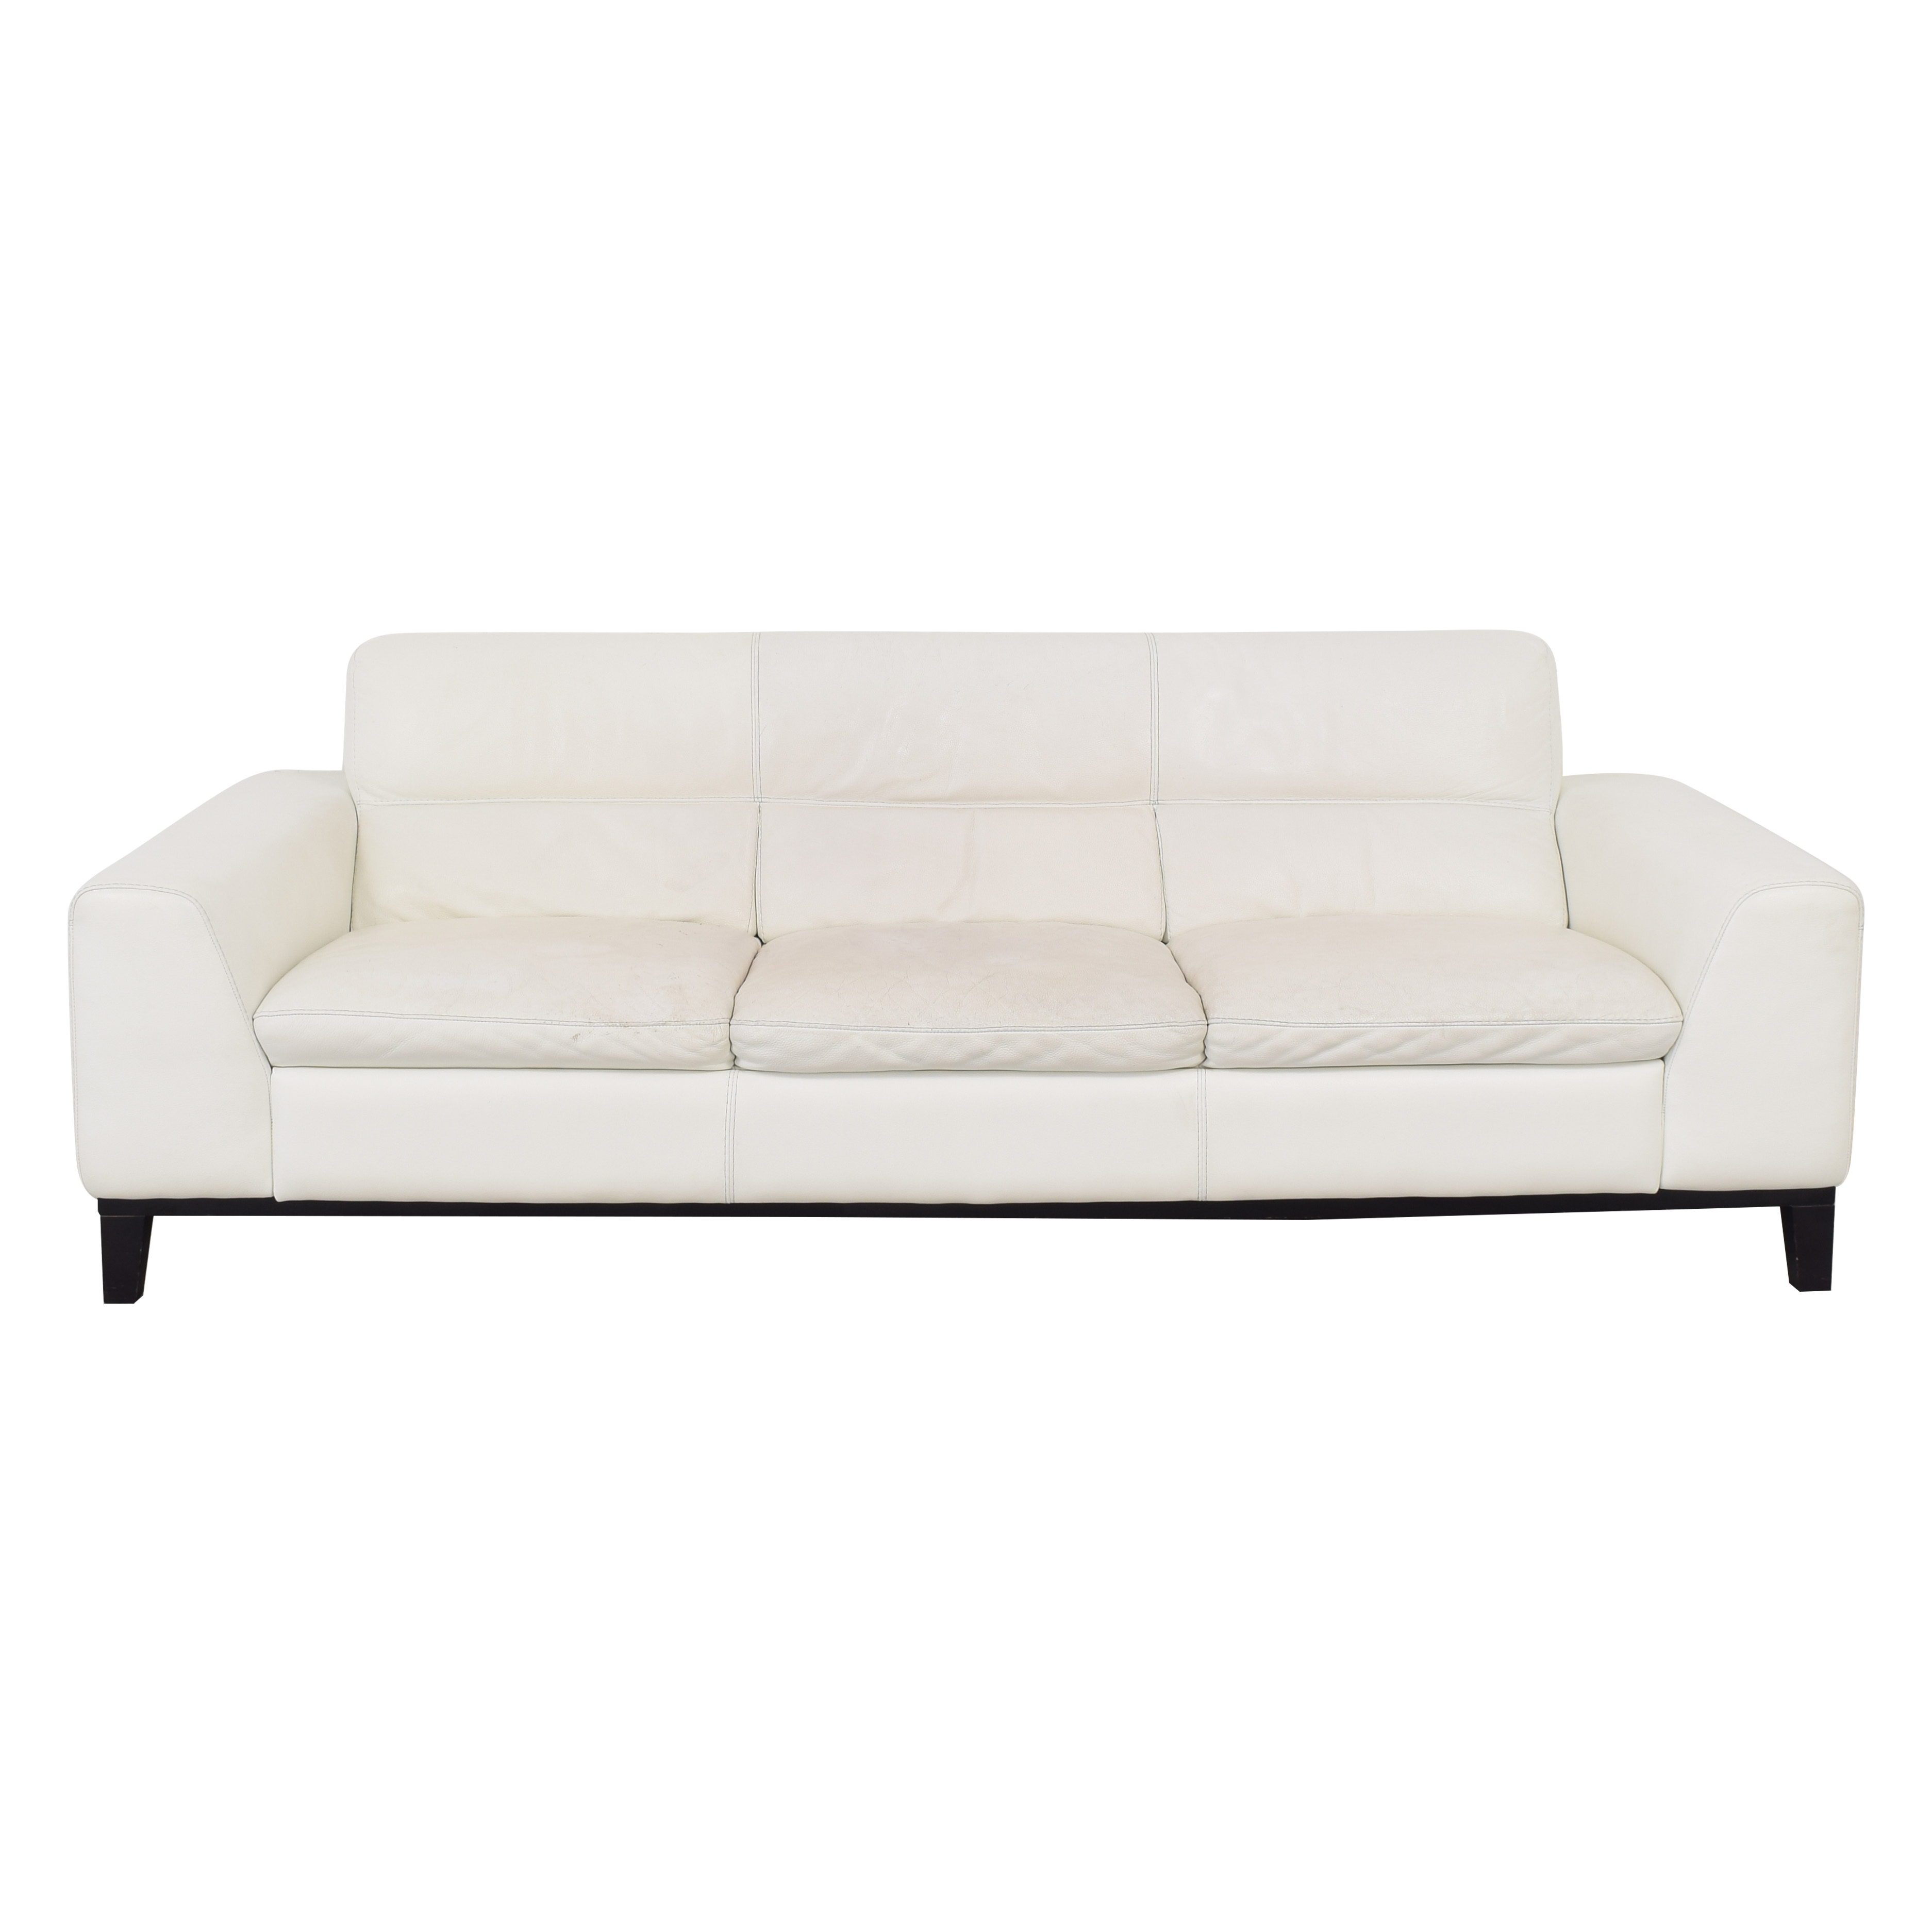 shop Calia Italia Soho 3-Seat Leather Couch Calia Italia Classic Sofas